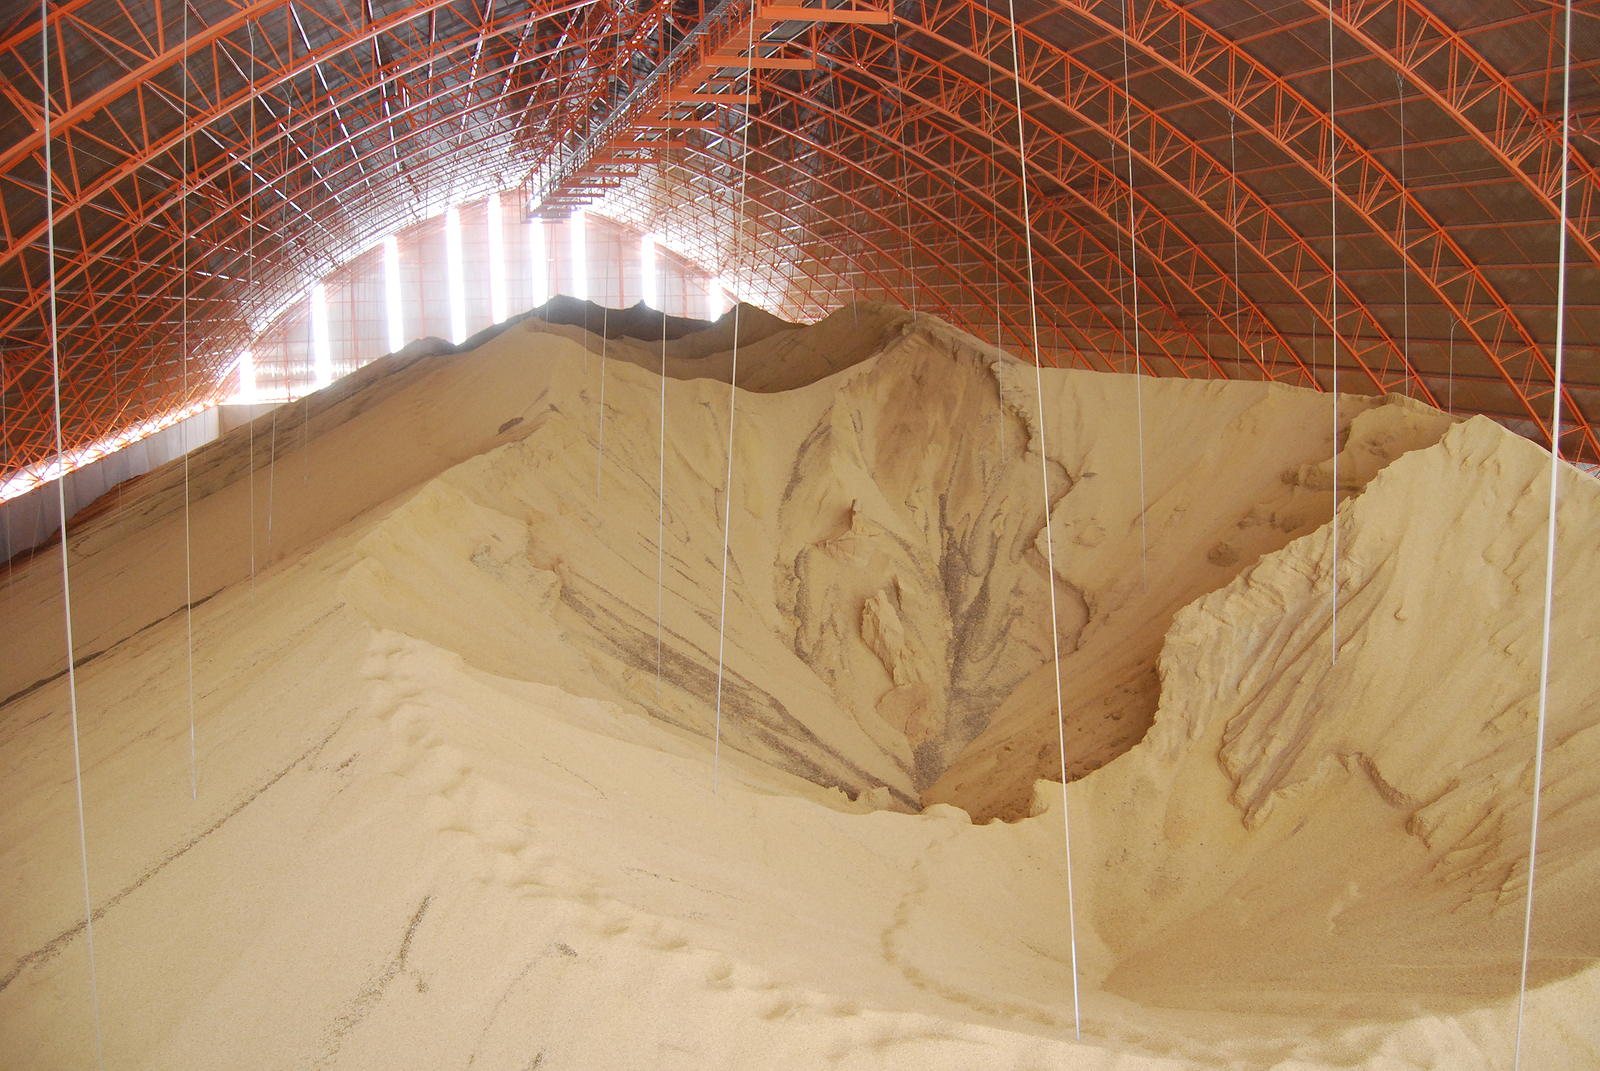 Storage facility for soy beans